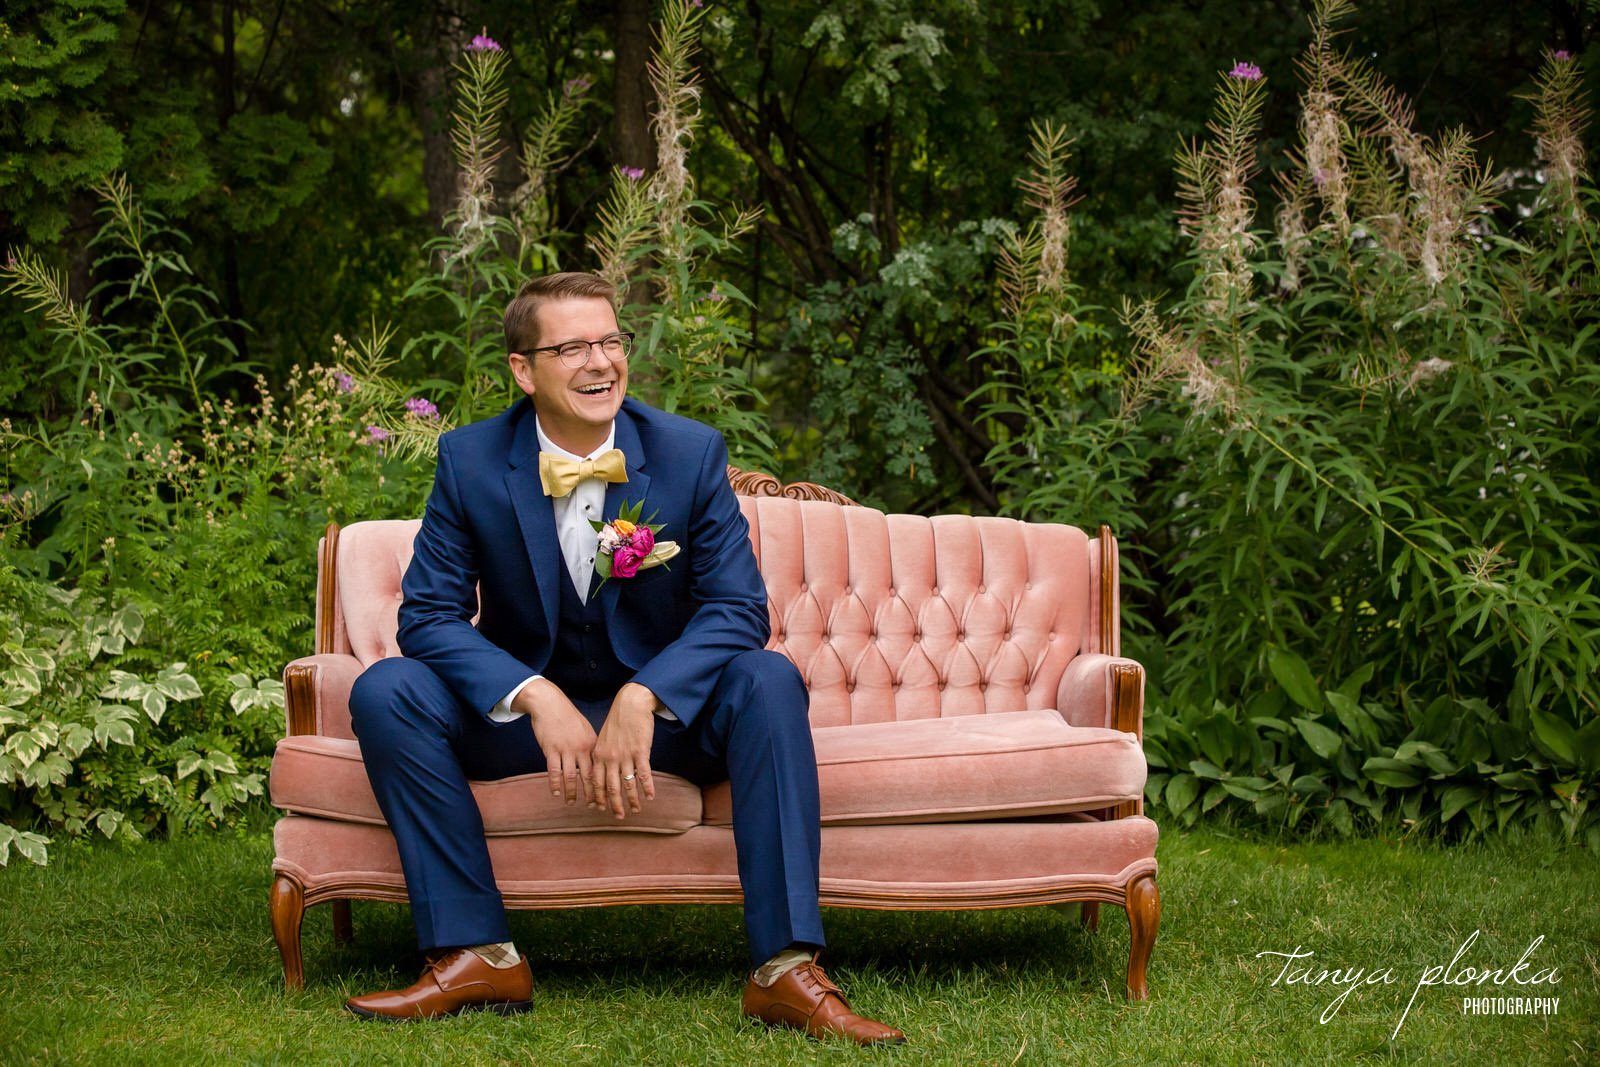 Groom in navy blue suit laughs while sitting on pink couch outside